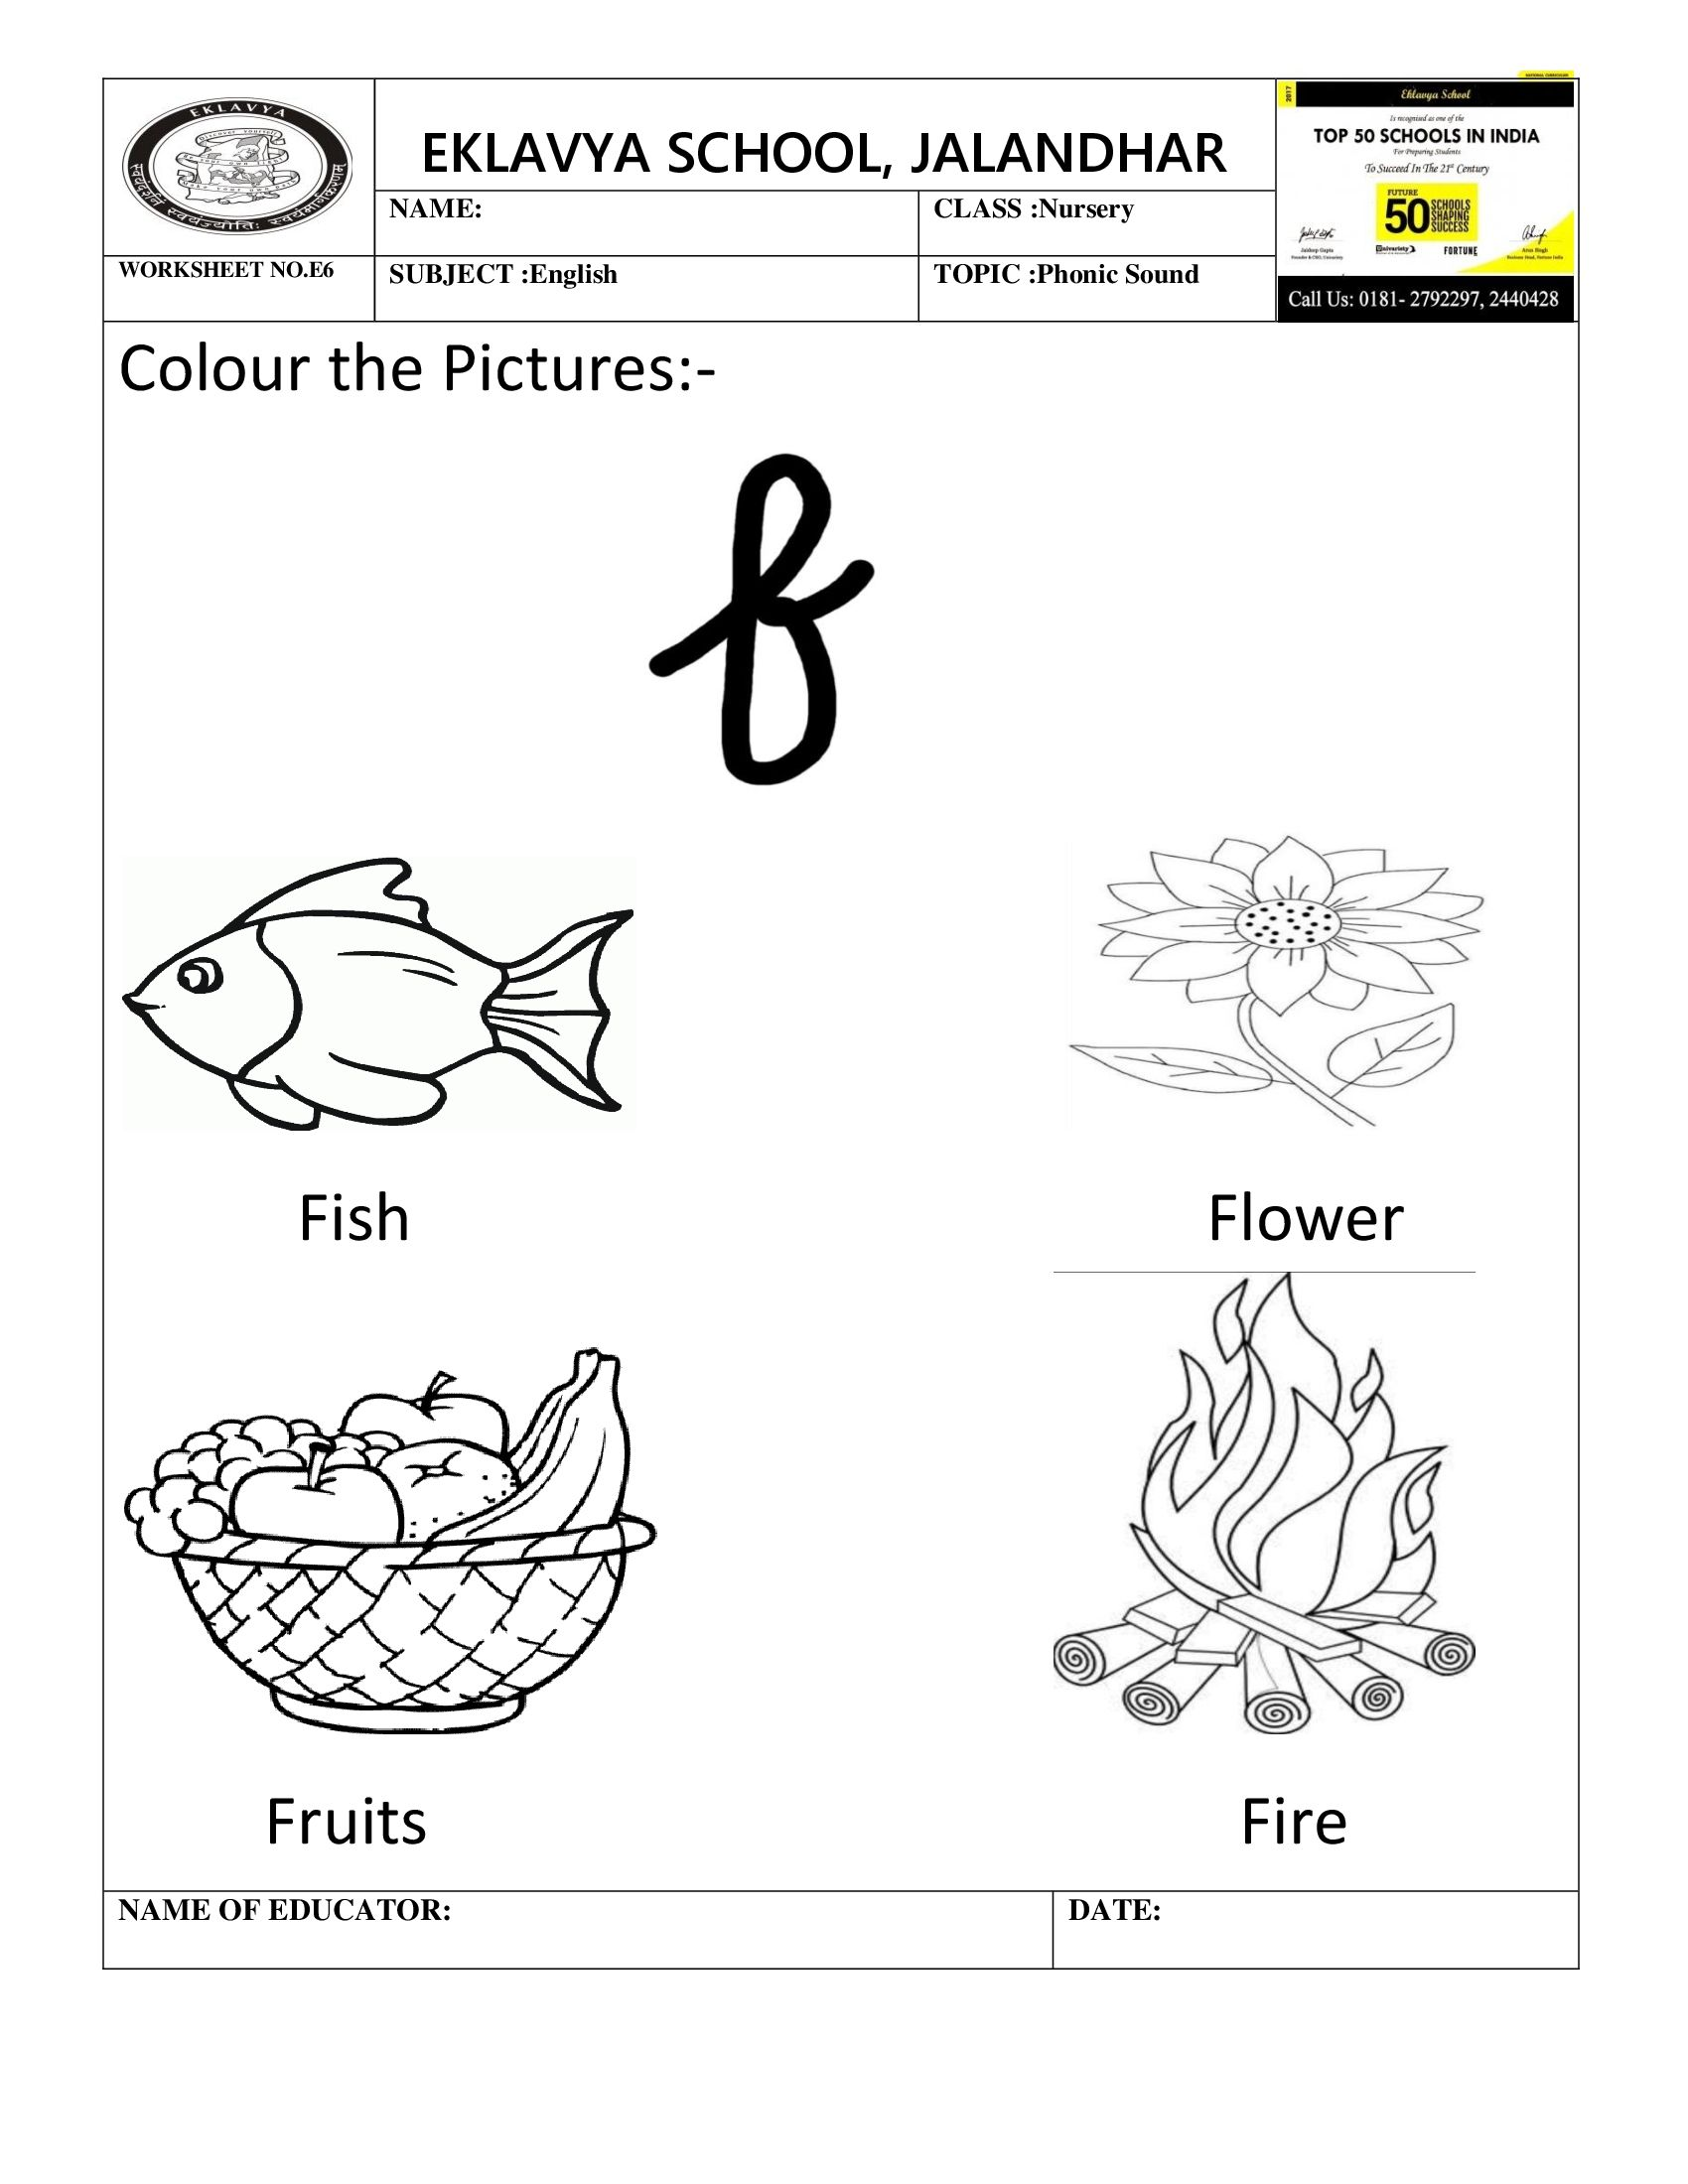 Worksheet On Phonic Sound F